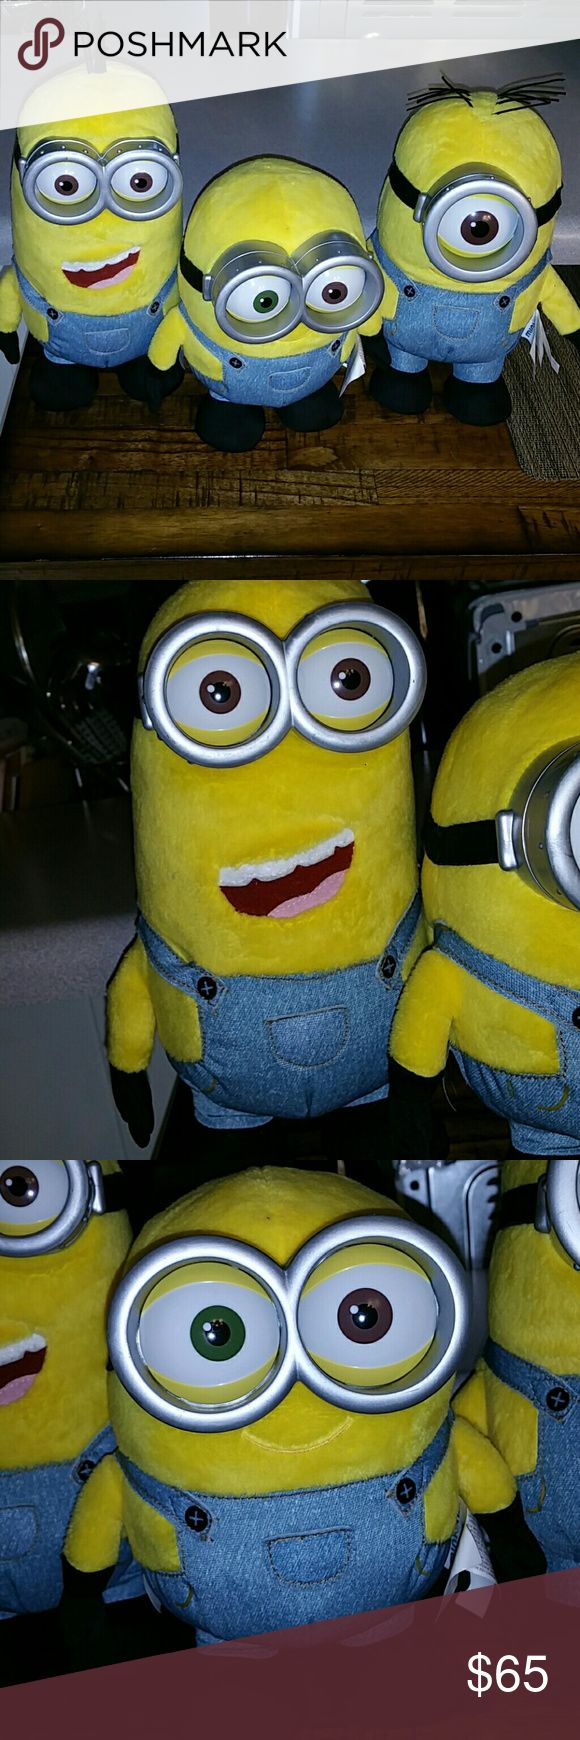 🍌🍌Minions (Kevin, Bob, Stuart)🍌🍌 Official Illumination Entertainment Product. This listing is for three main Minions from the movie 2015 Minions. Clean, no stains or tears. With original tags. Illumination Entertainment Other